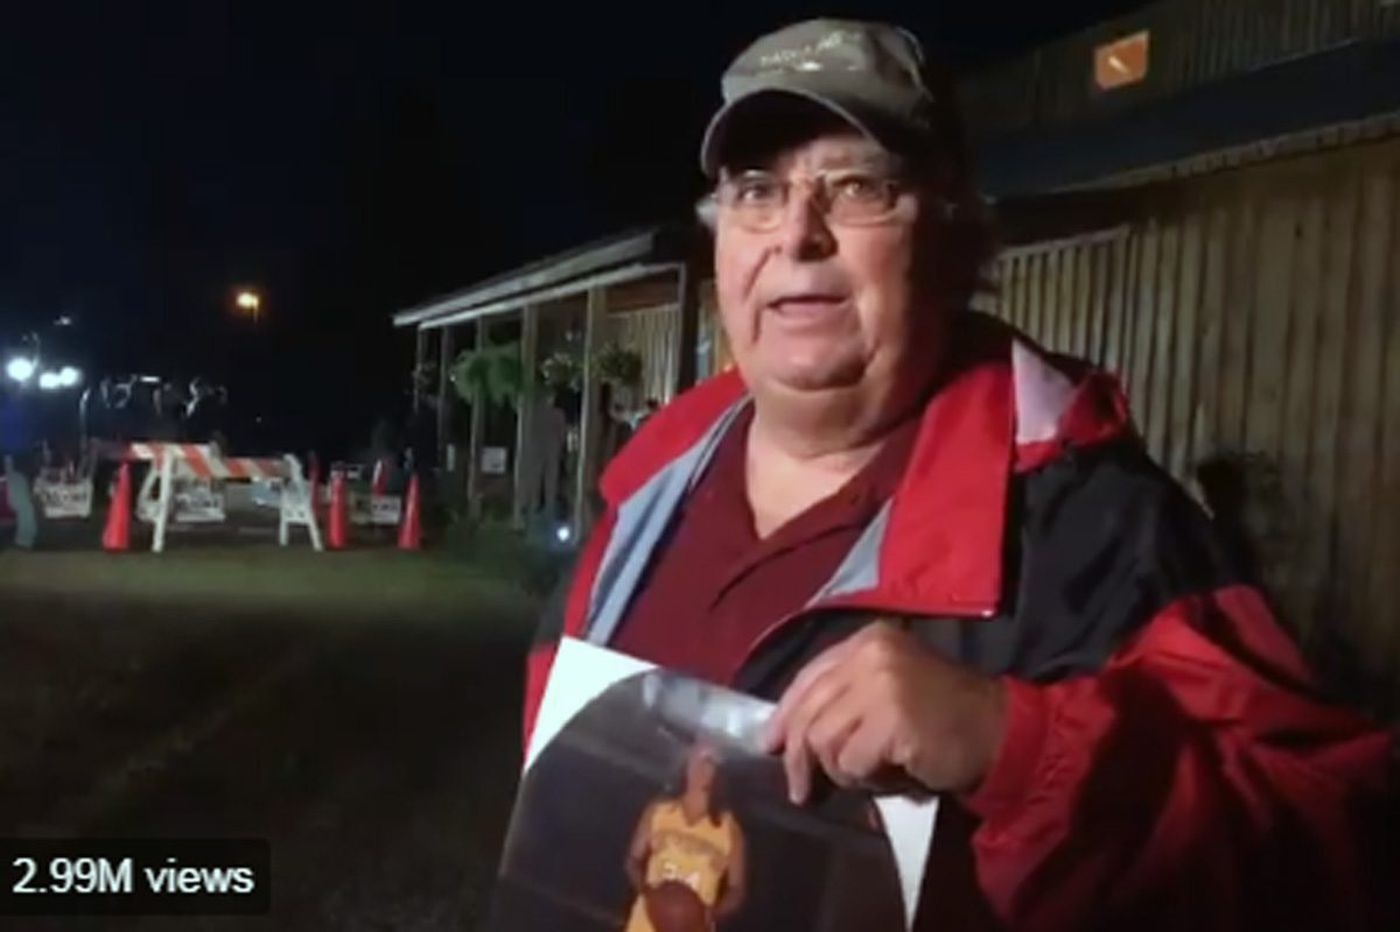 'How is my daughter a pervert?': Alabama dad's plain-spoken rebuke of Roy Moore strikes a nerve